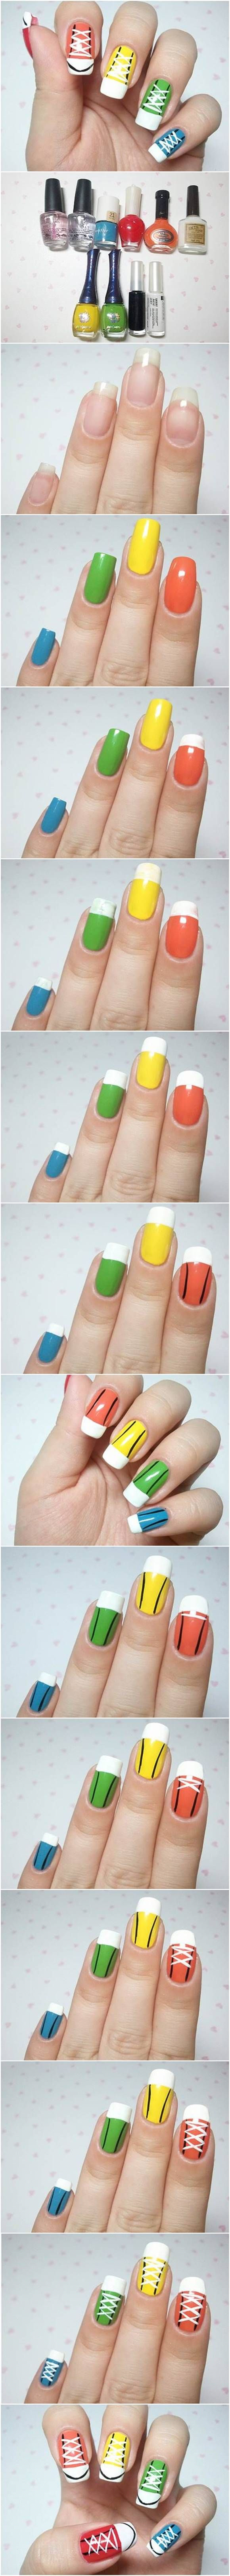 How to DIY Cute Converse Sneakers Nail Art | Sneaker nails, Converse ...